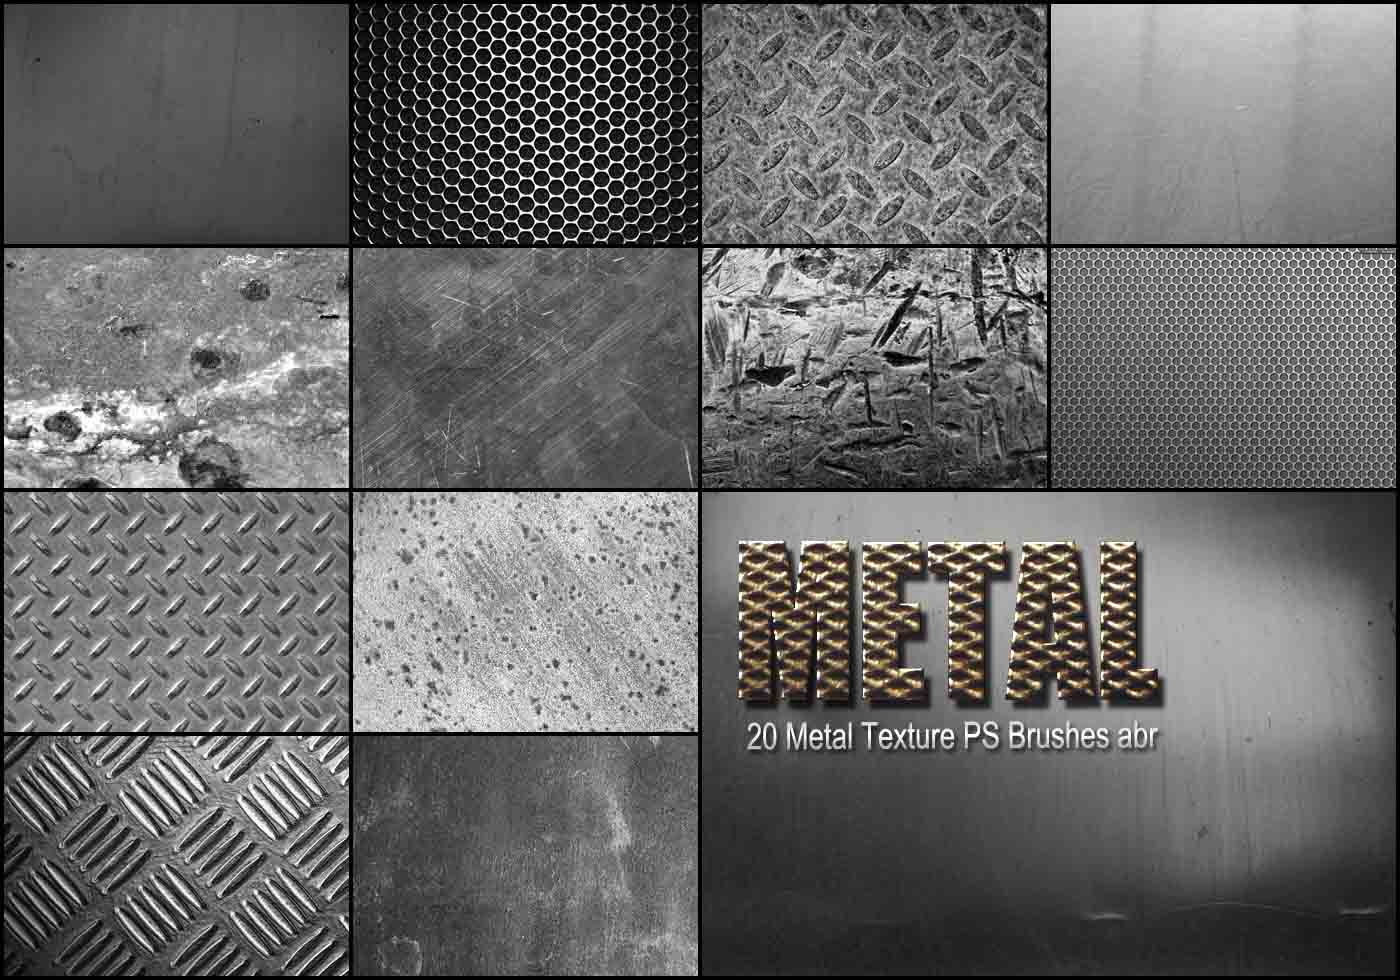 20 Metal Texture Ps Brushes Abr Vol 3 Free Photoshop